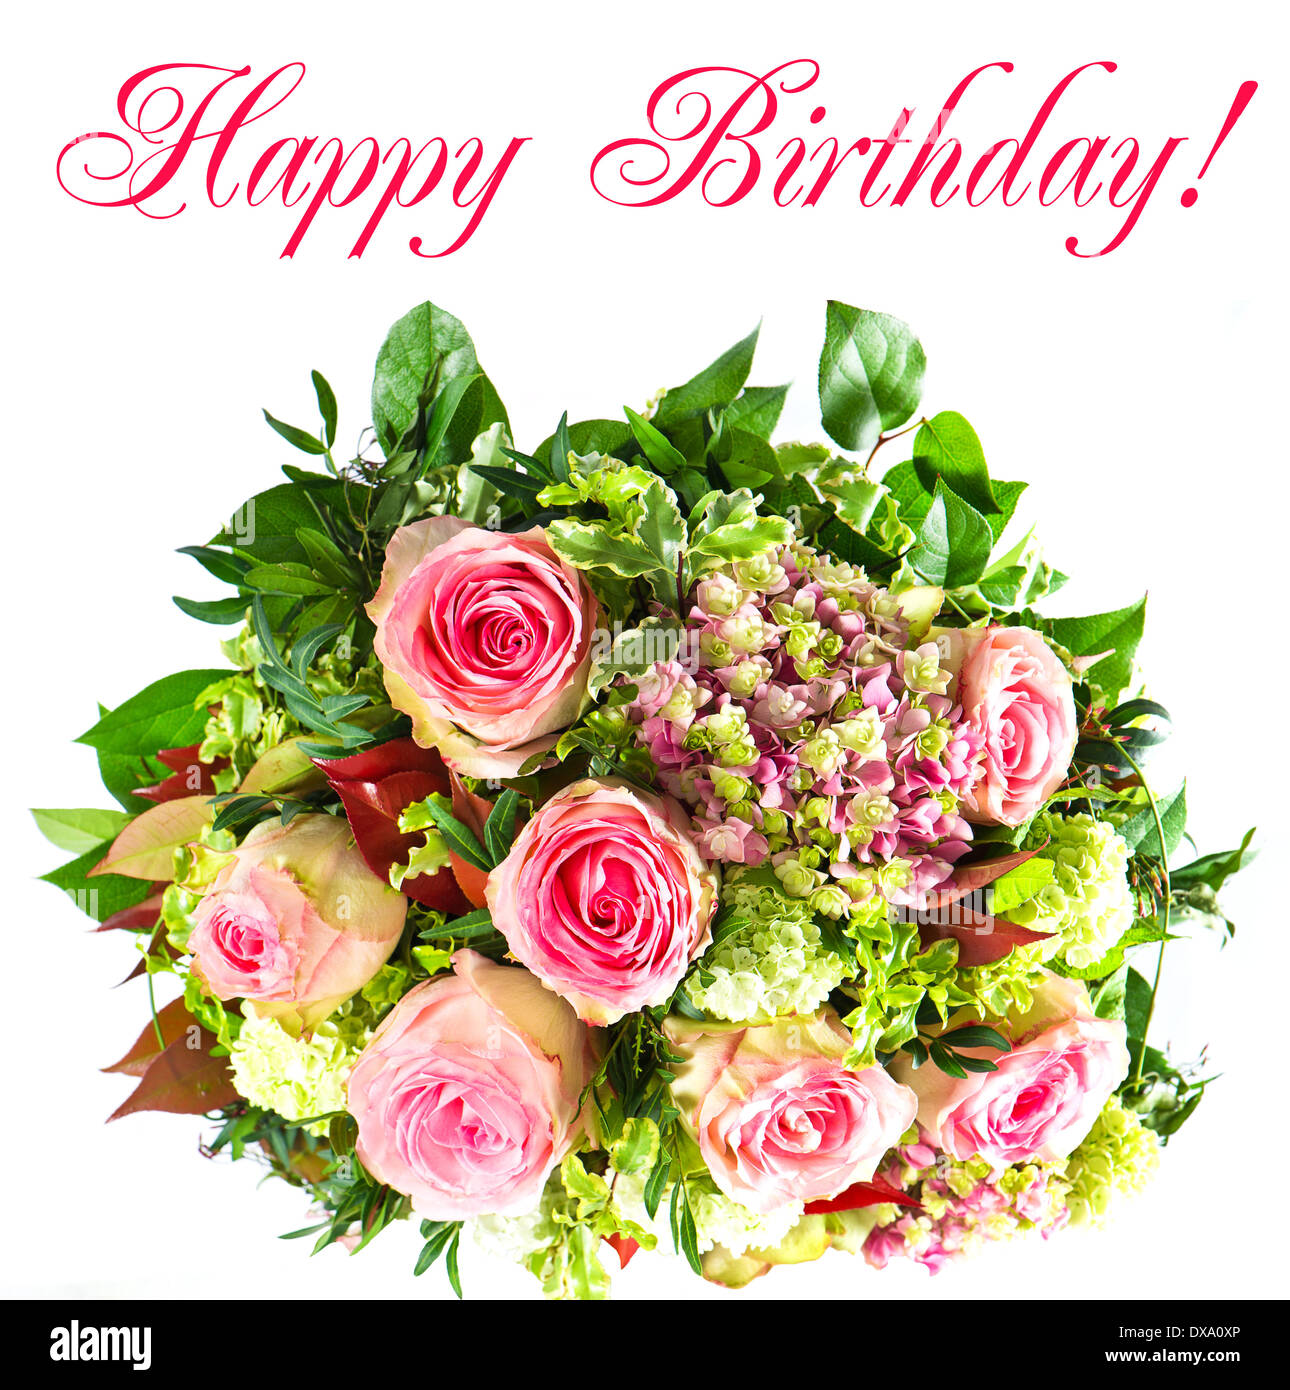 colorful flowers bouquet. happy birthday! Stock Photo: 67832430 - Alamy